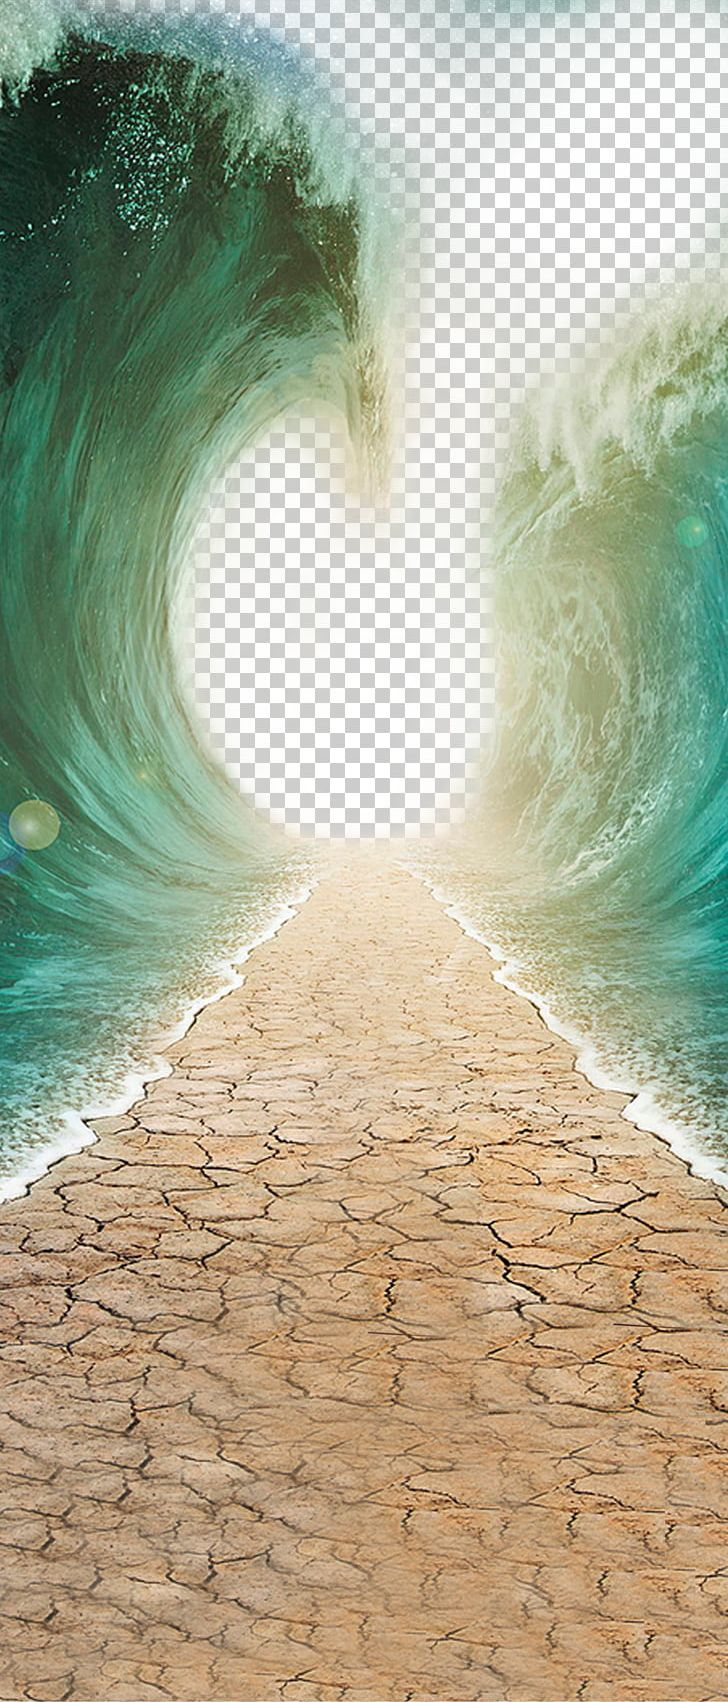 Flipboard Reality Faith Belief Mind PNG, Clipart, Abstract Waves, Belief, Calm, Concept, Faith Free PNG Download